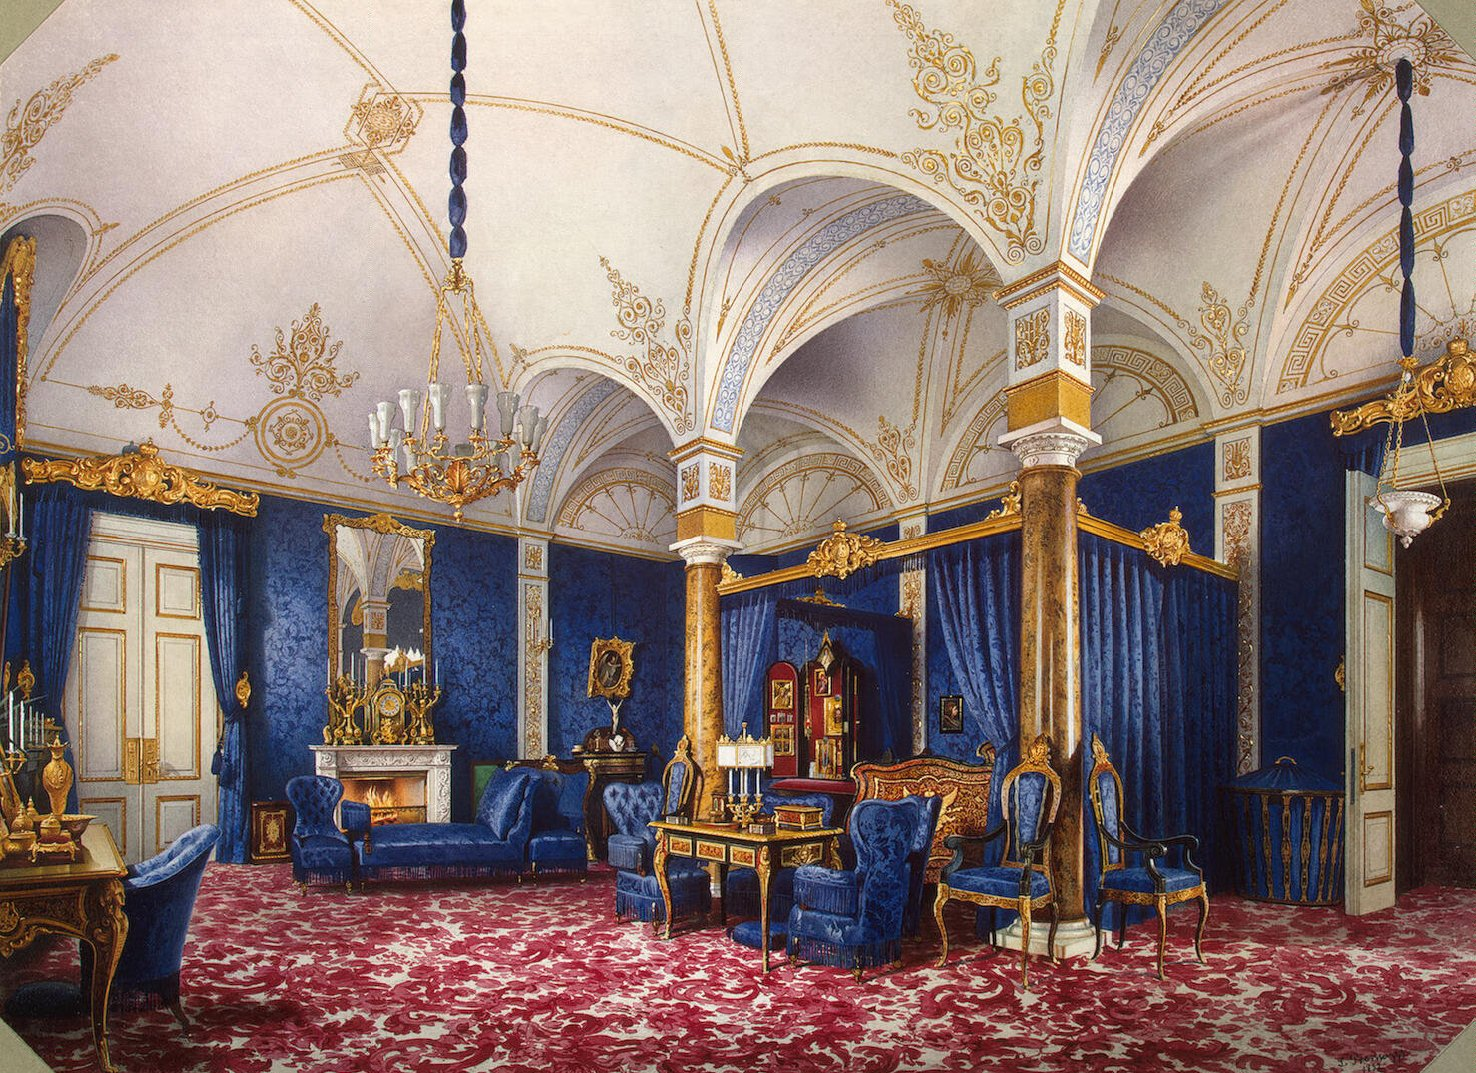 http://cp12.nevsepic.com.ua/93/1348000513-501917-interiors-of-the-winter-palace-the-bedchamber-of-empress-maria-alexandrovna.big-www.nevsepic.com.ua.jpg